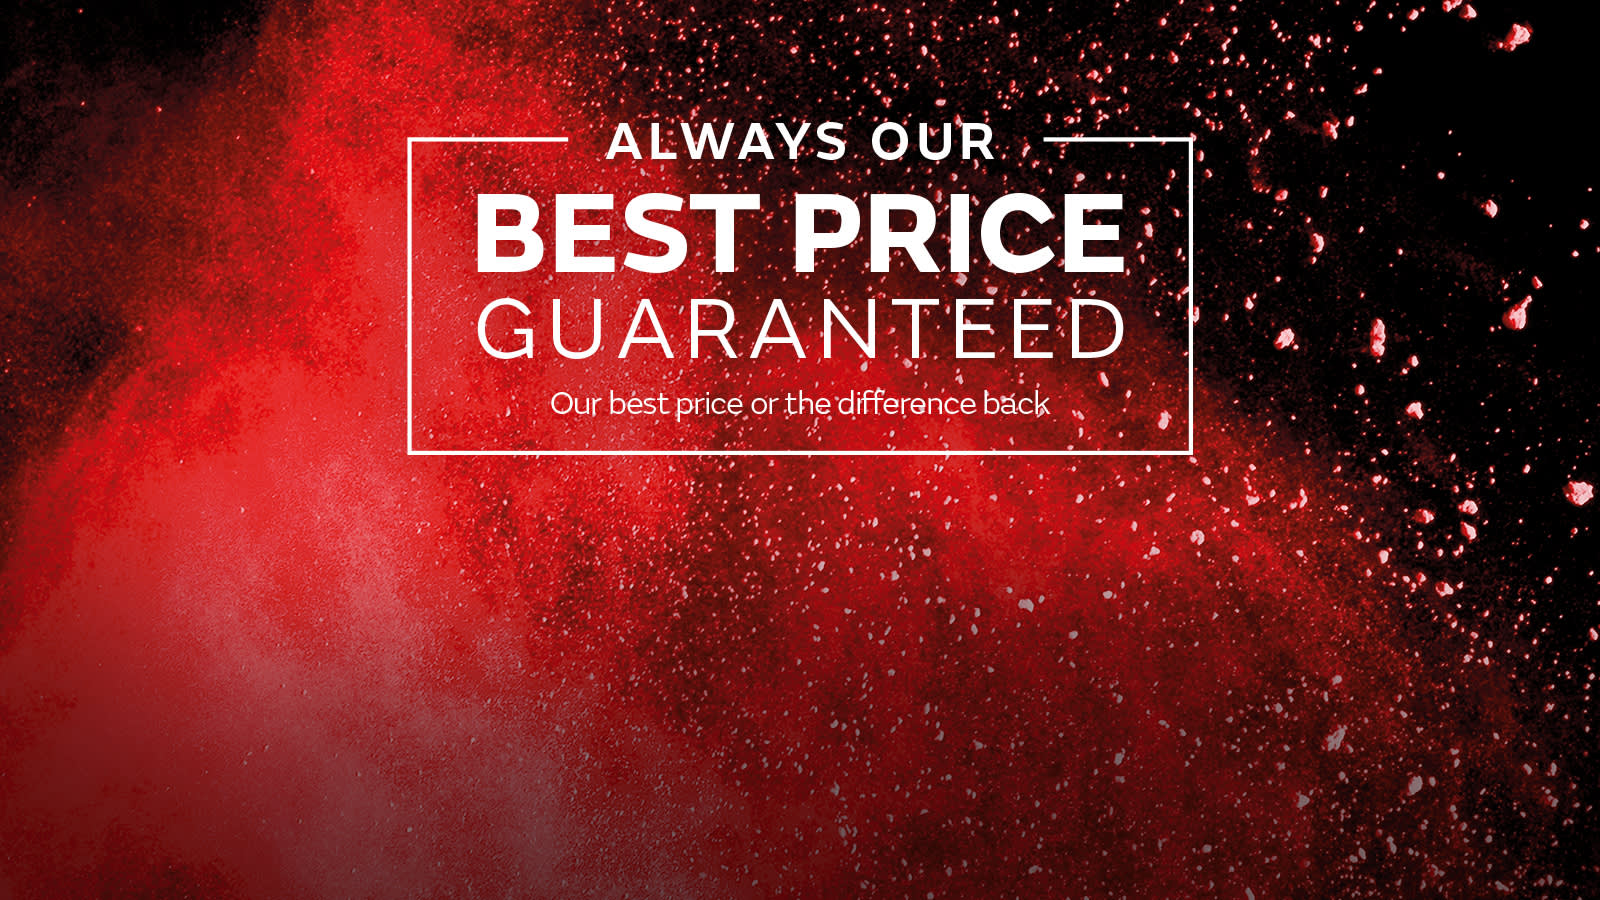 Alwyas our Best Price Guaranteed or the difference back